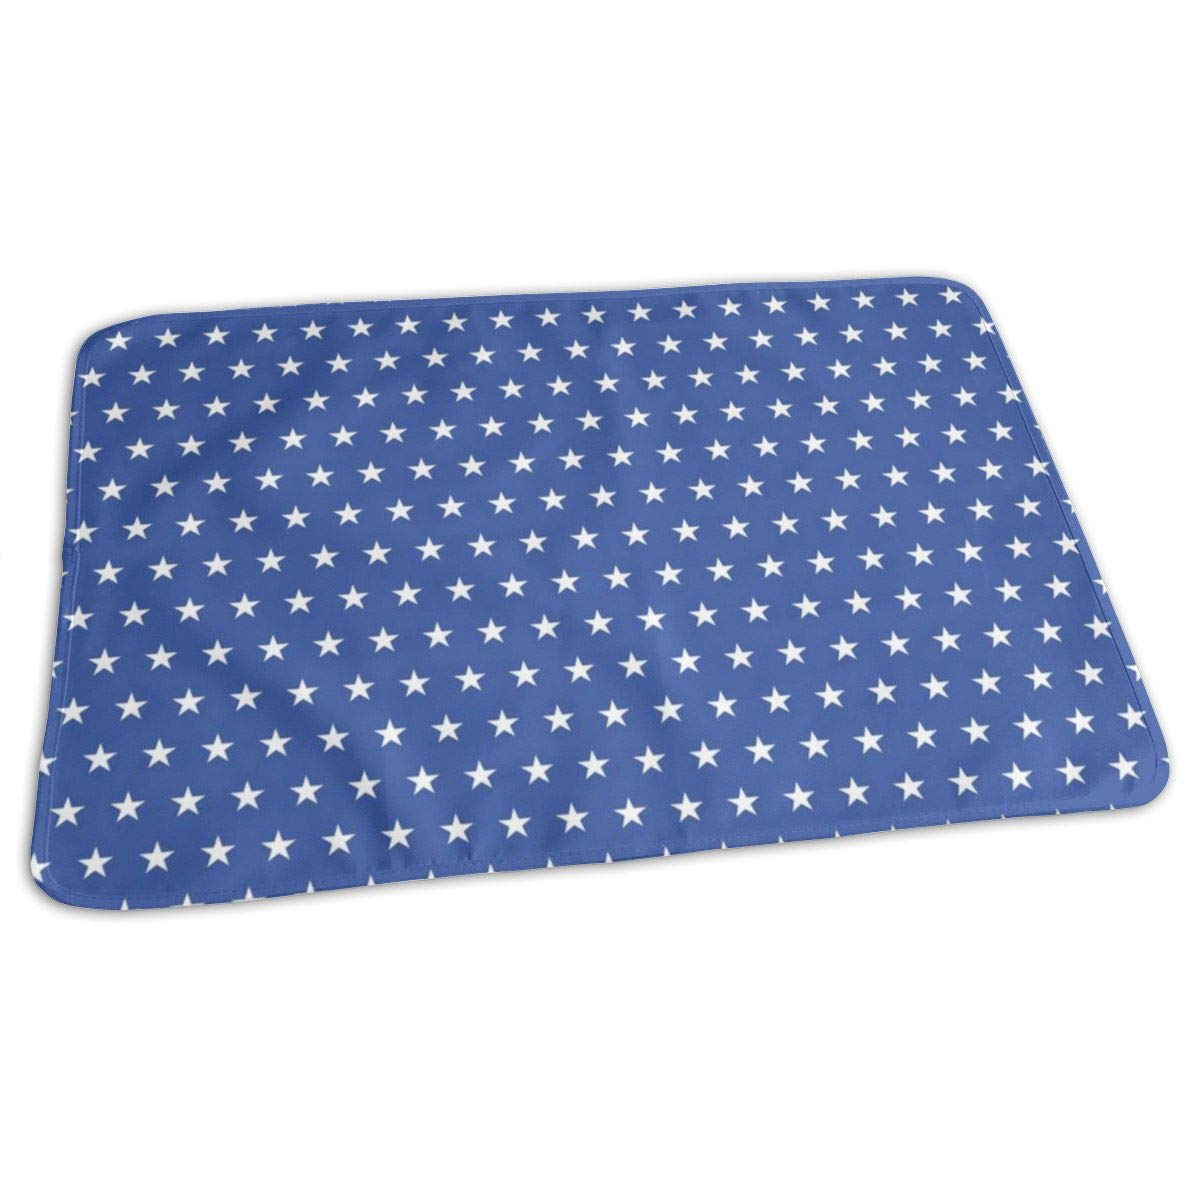 Classic Flag - Tiny Stars Baby Portable Reusable Changing Pad Mat 19.7x27.5 inch